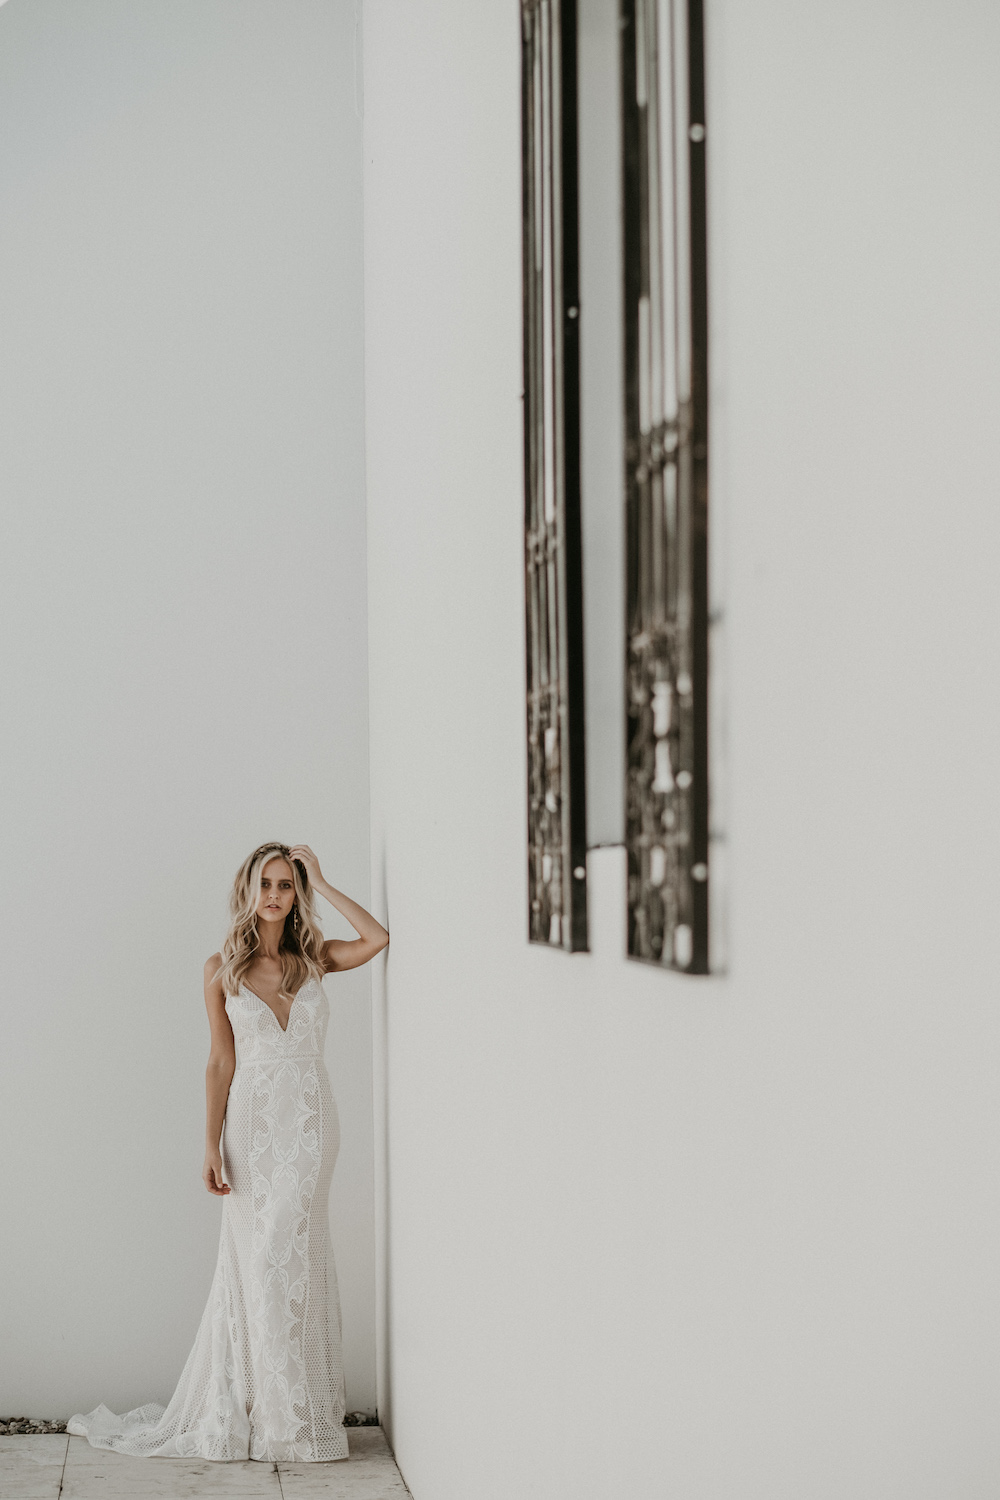 The Phoenix wedding dress from Jane Hill Bridal | View on LOVE FIND CO.